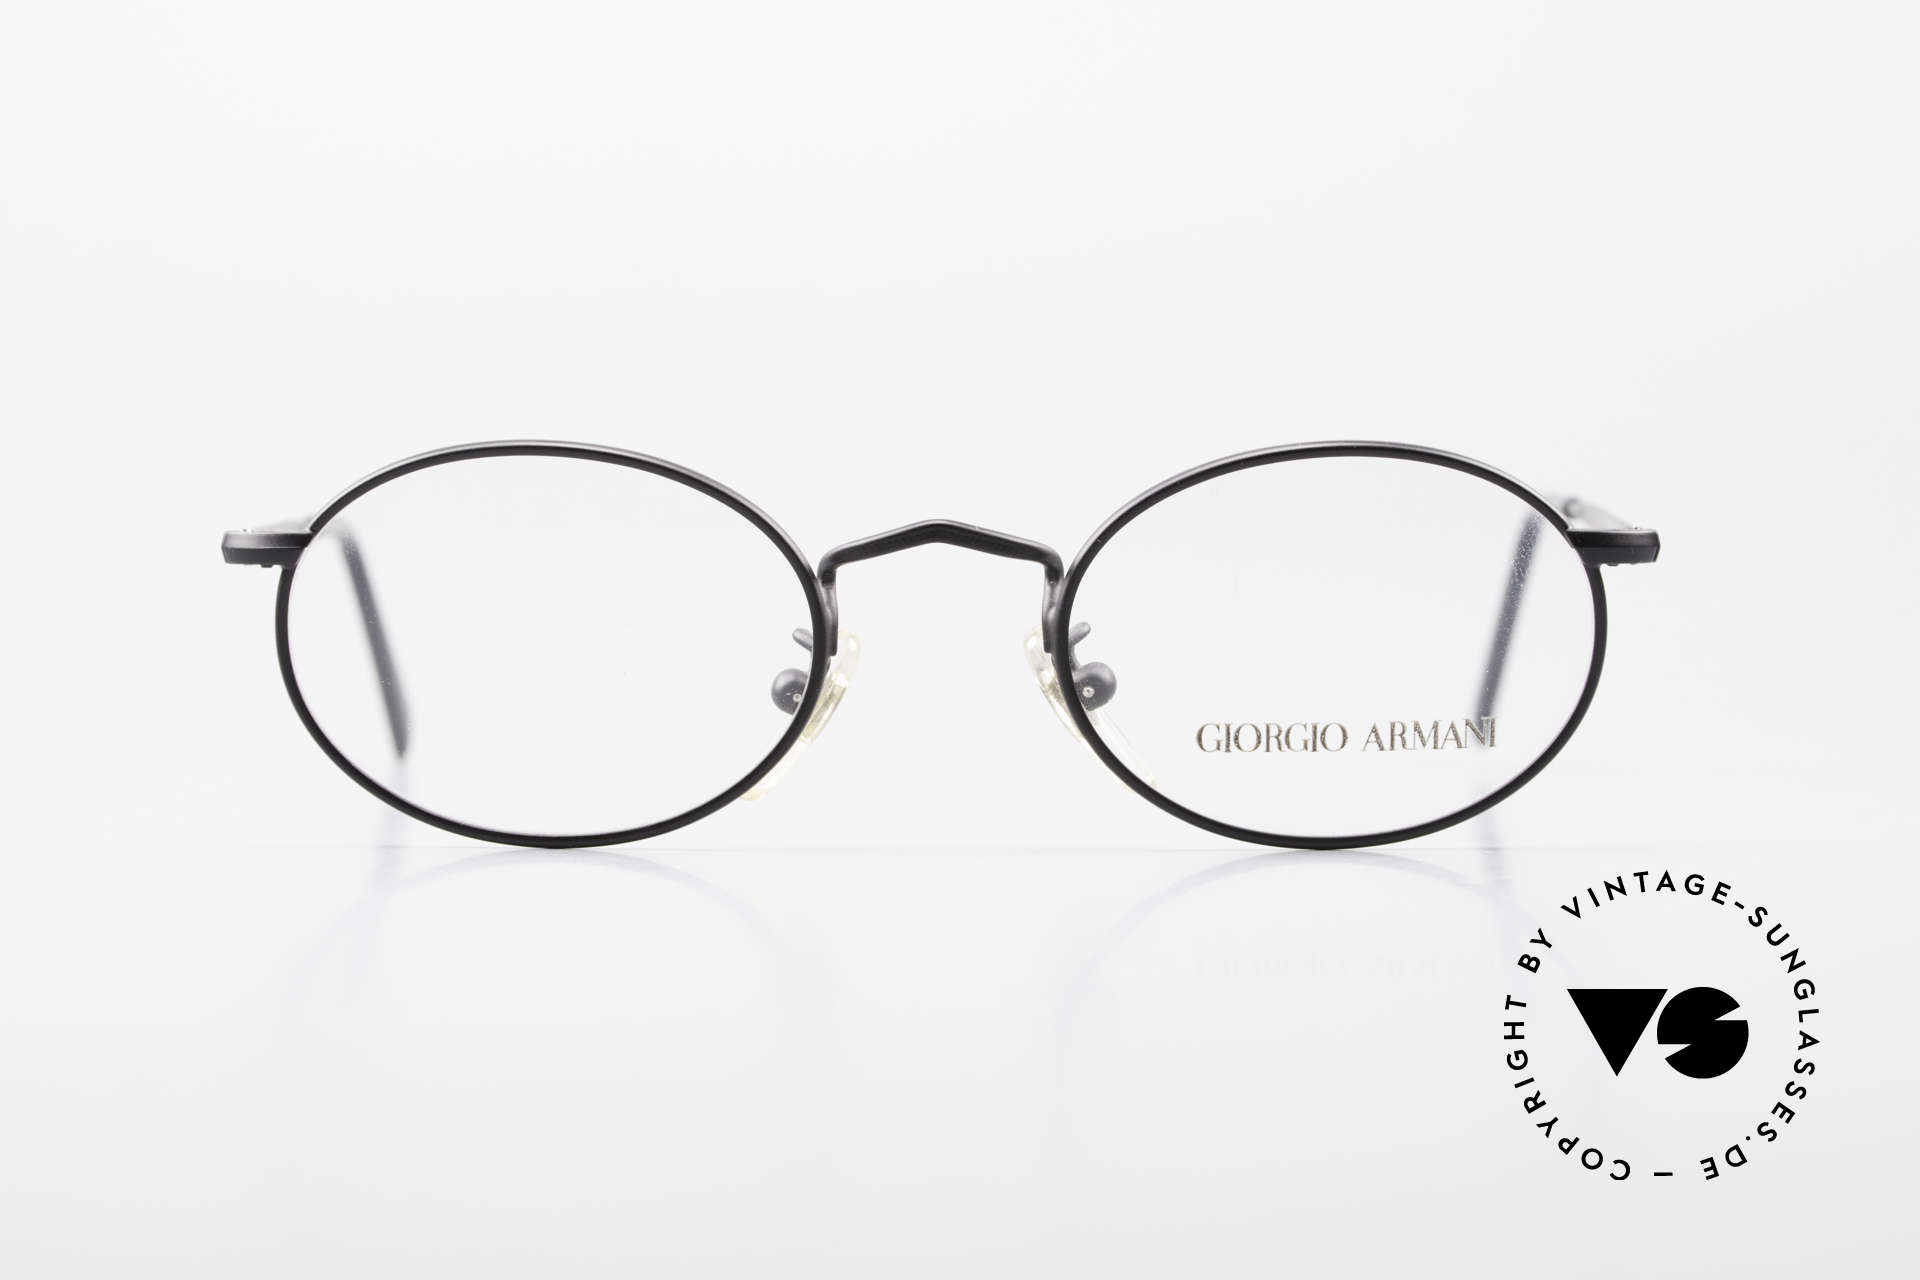 Giorgio Armani 131 Vintage Eyeglasses Oval Frame, model 131, col. 706 (black), SMALL size 46-20, 140, Made for Men and Women